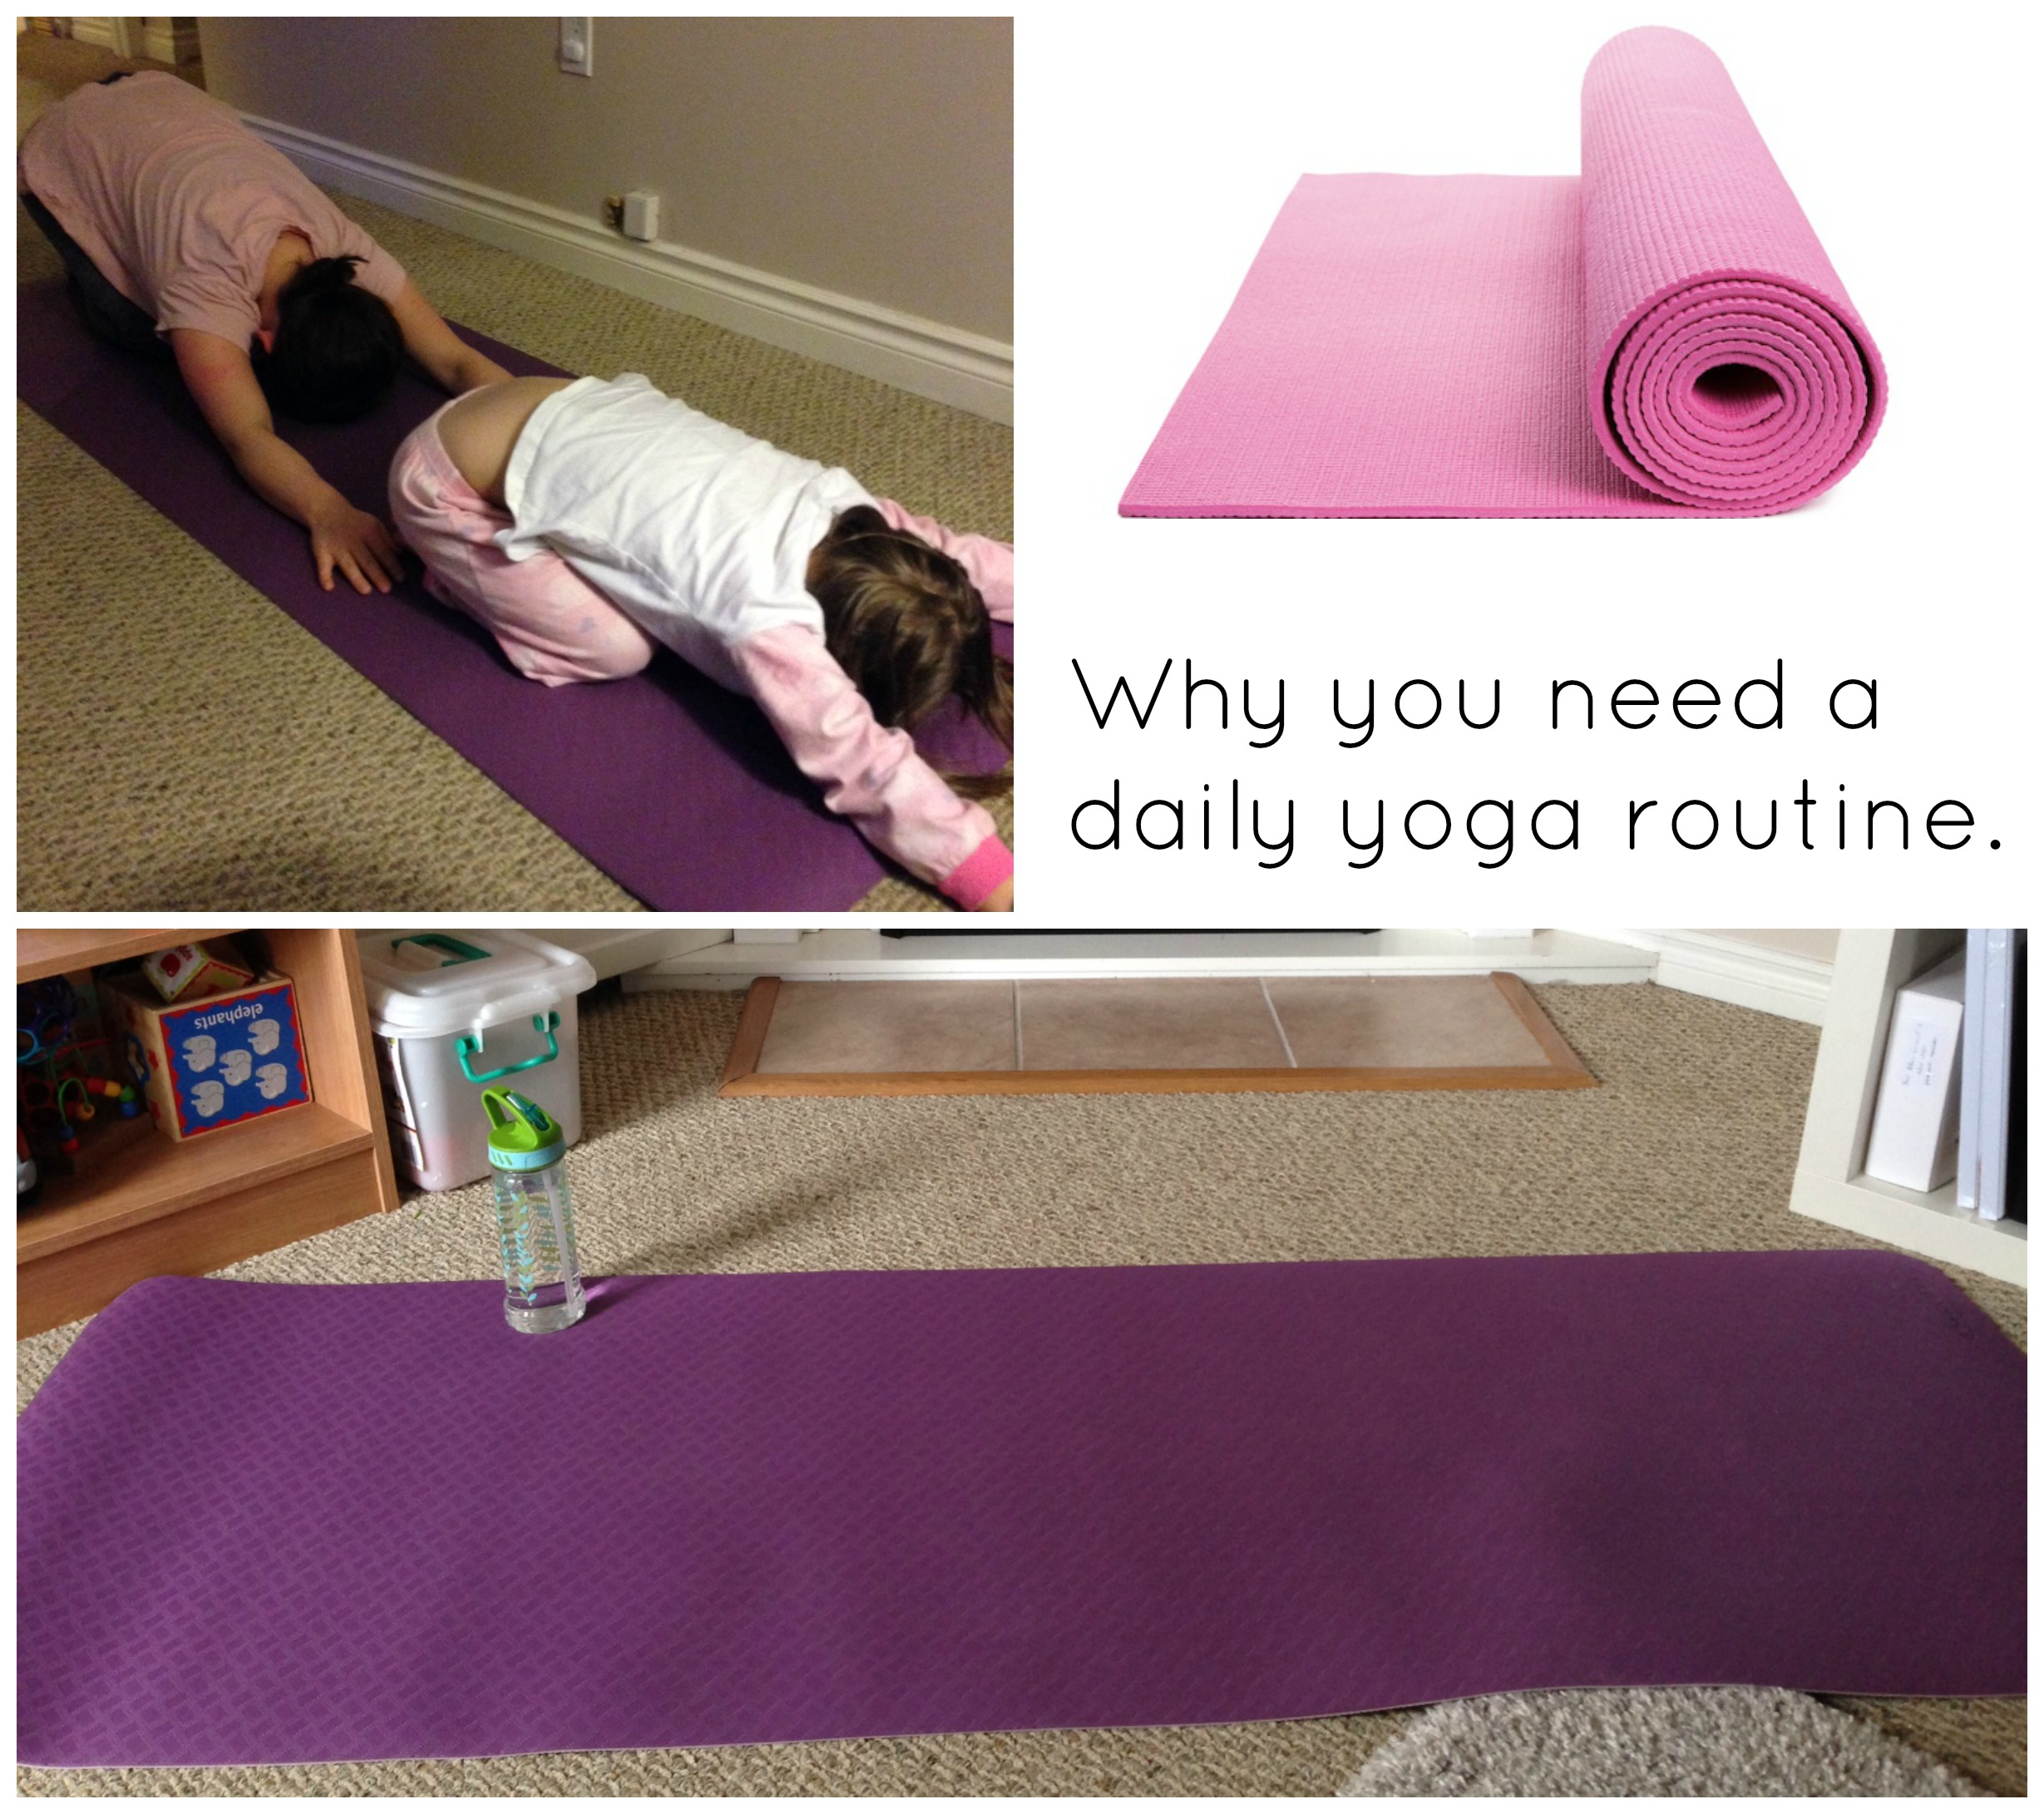 Why you need a daily yoga routine